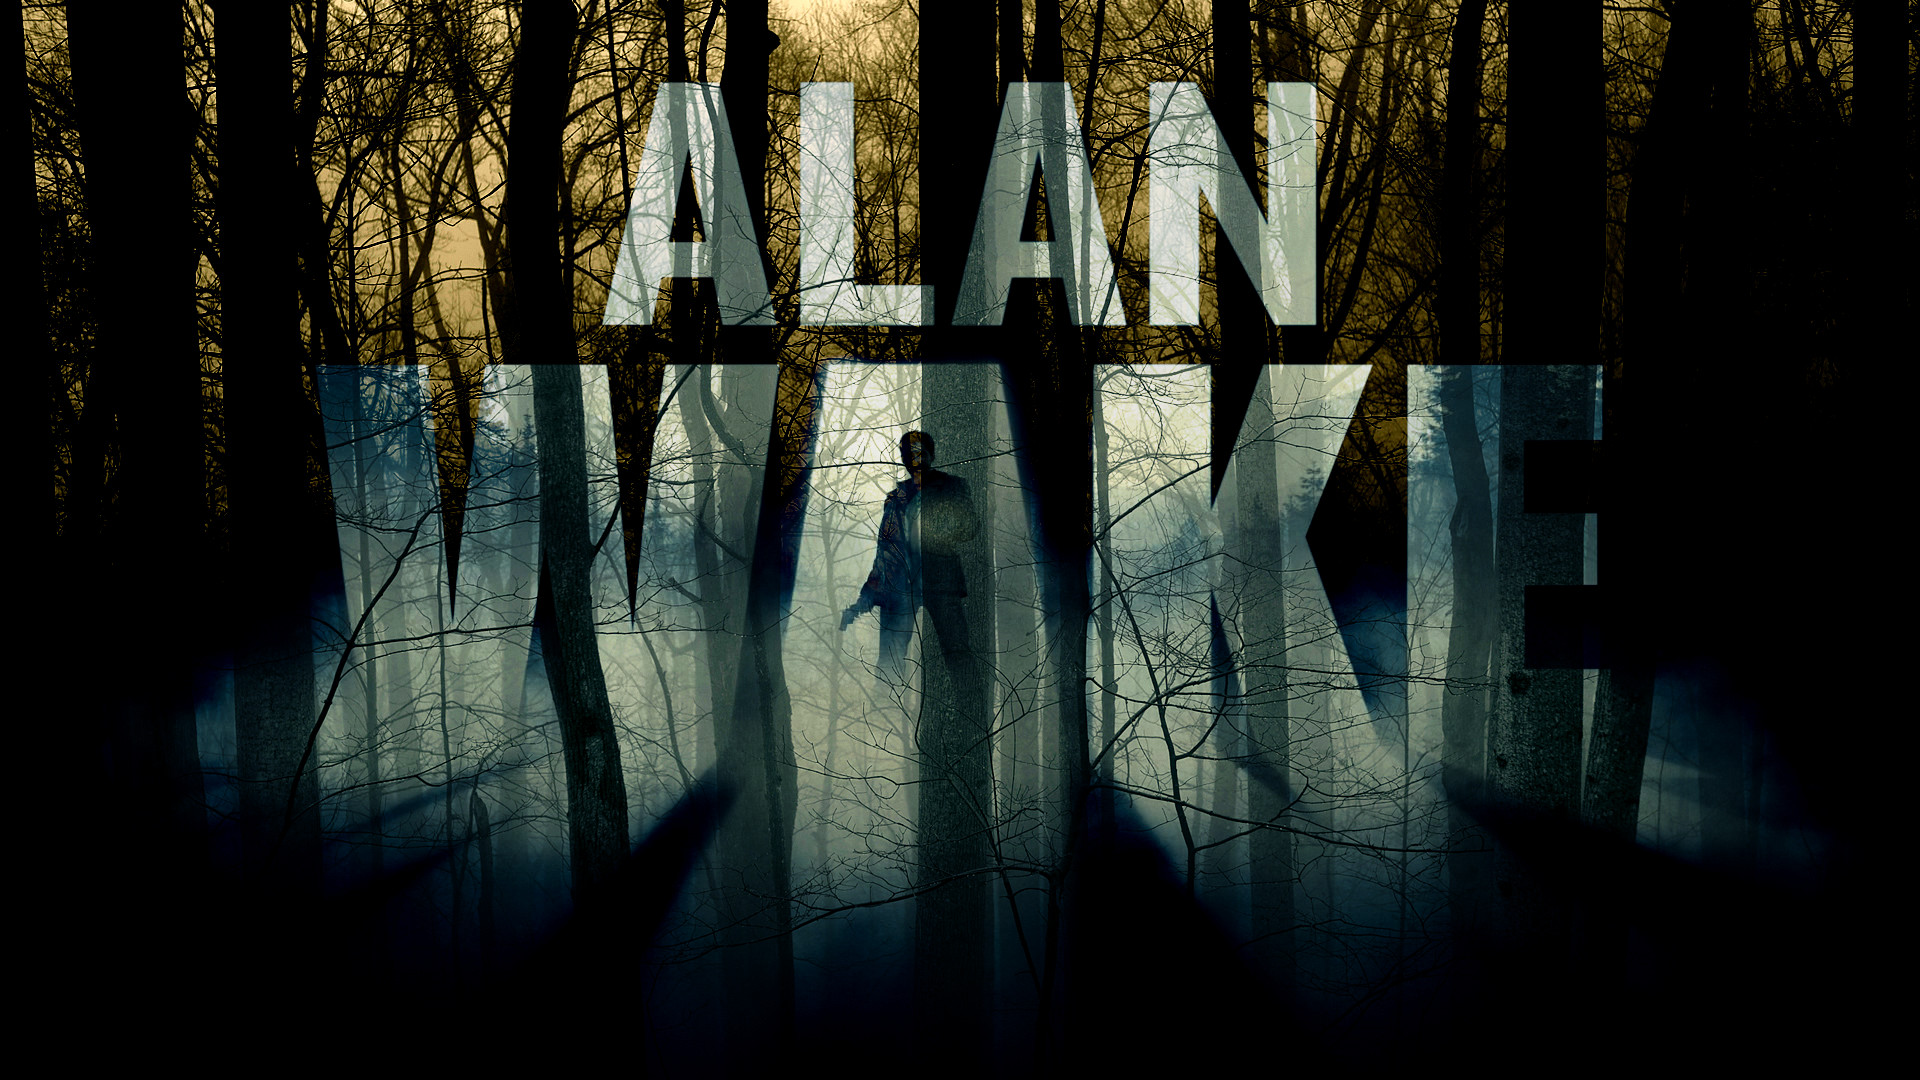 1920x1080 Alan wake wp by waslosman Alan wake wp by waslosman